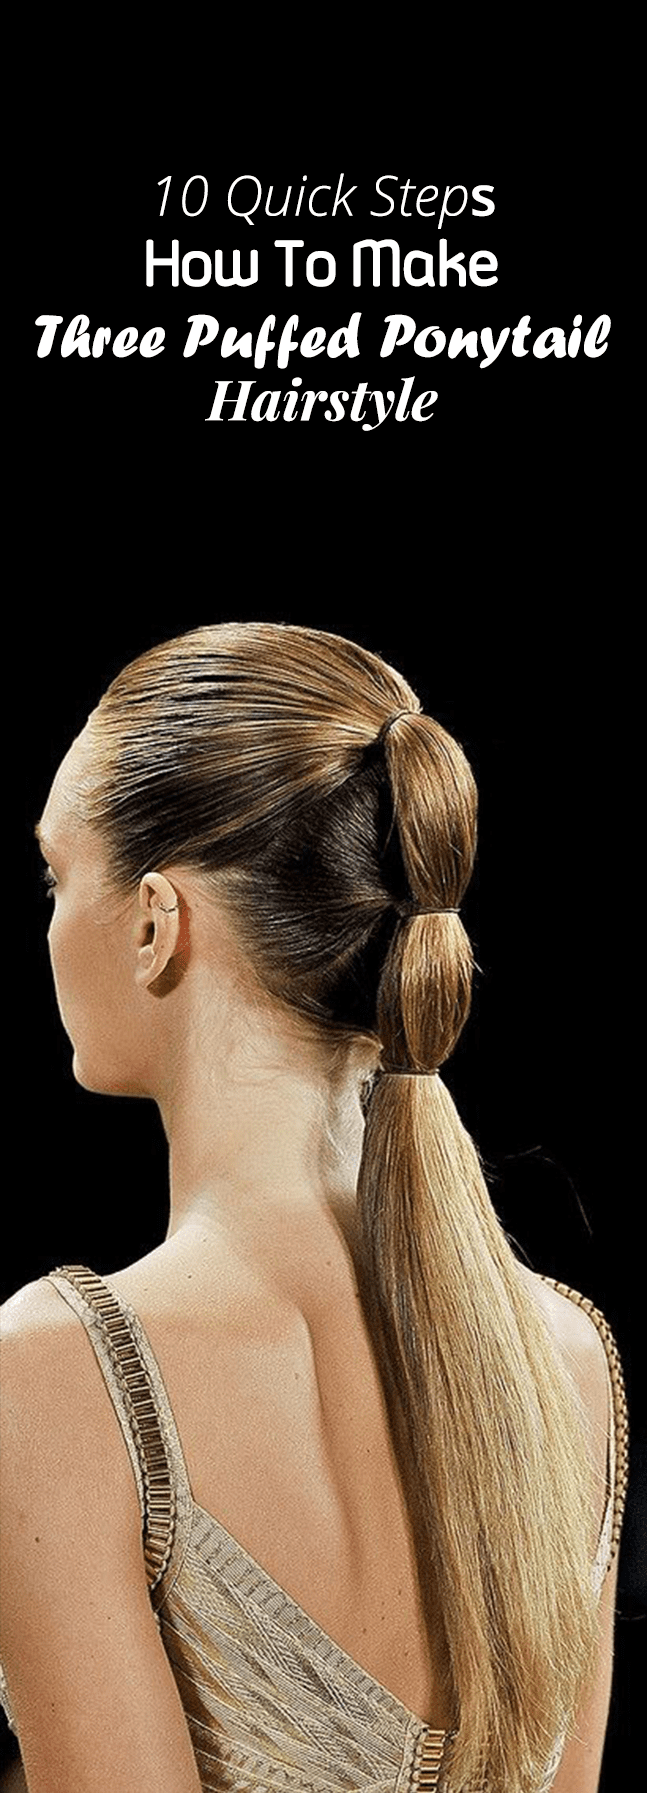 10 Quick Steps How To Make Three Puffed Ponytail Hairstyle